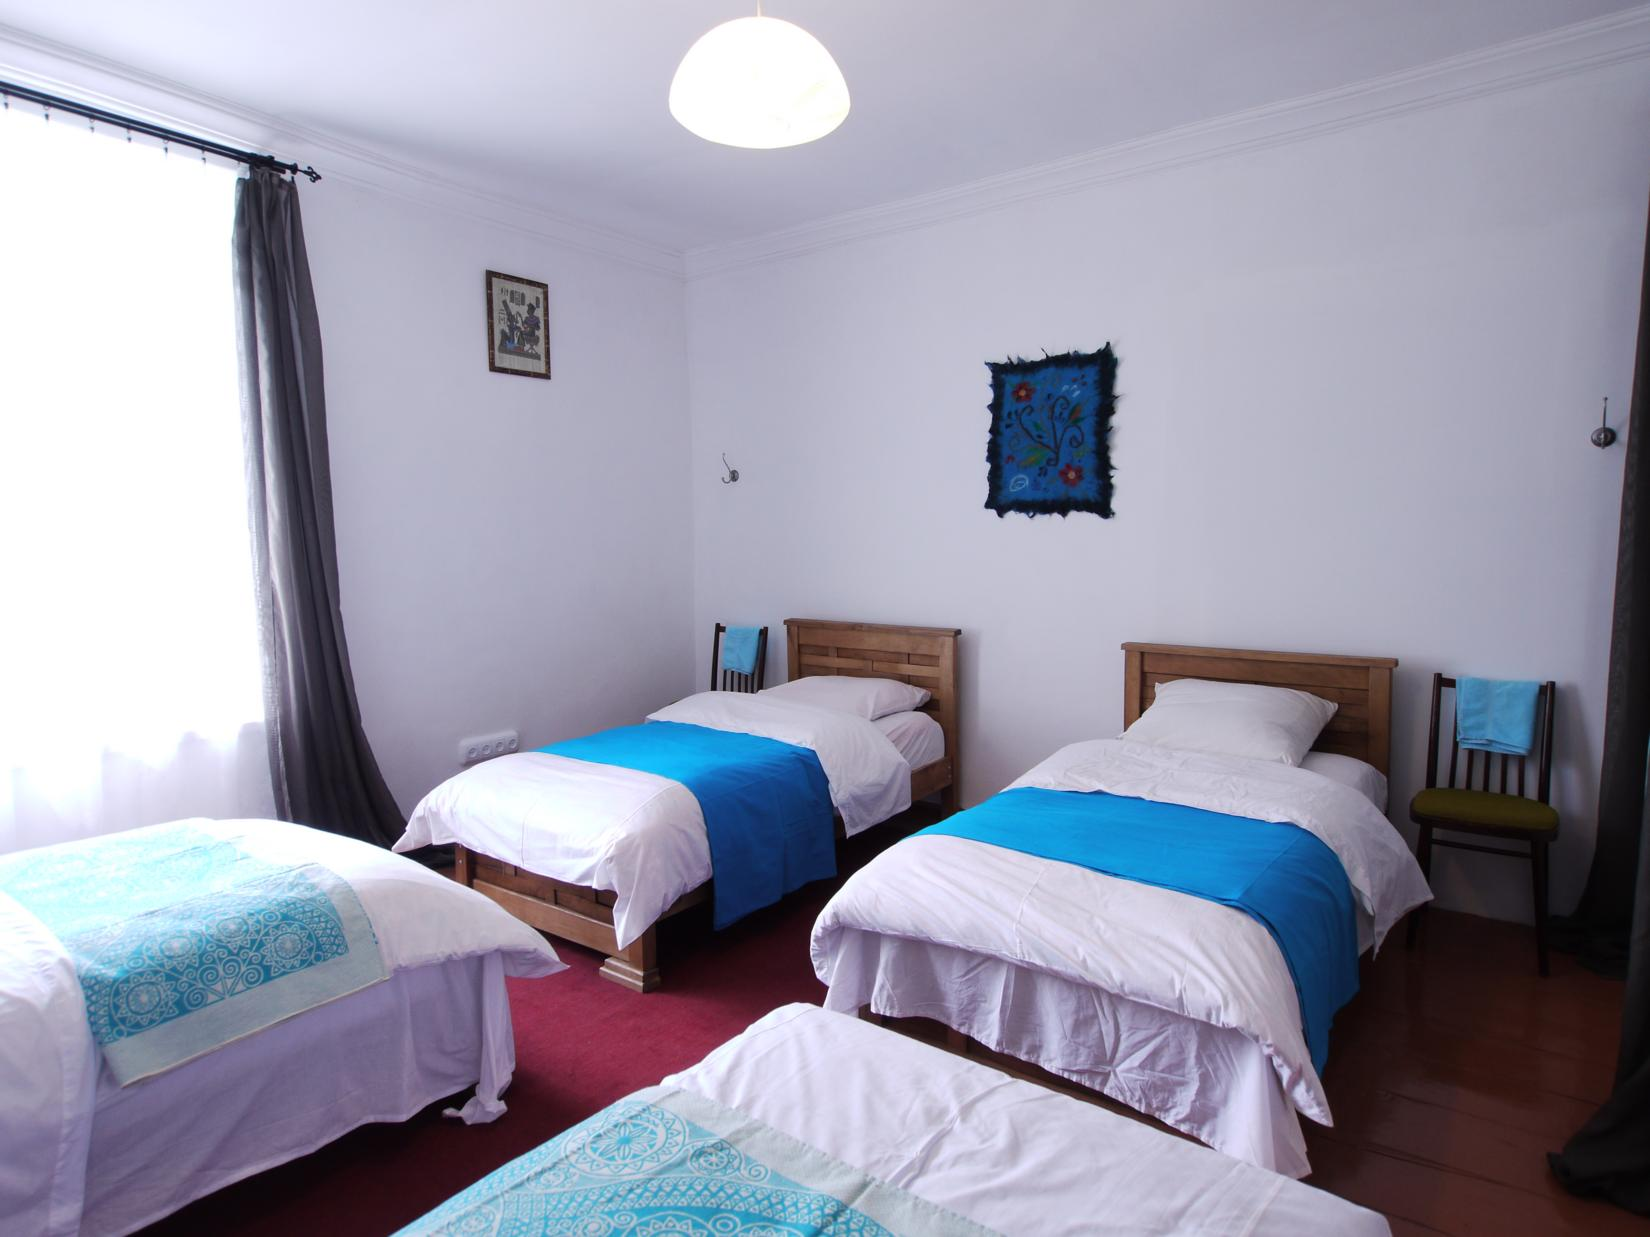 Gallery Nazys Guest House